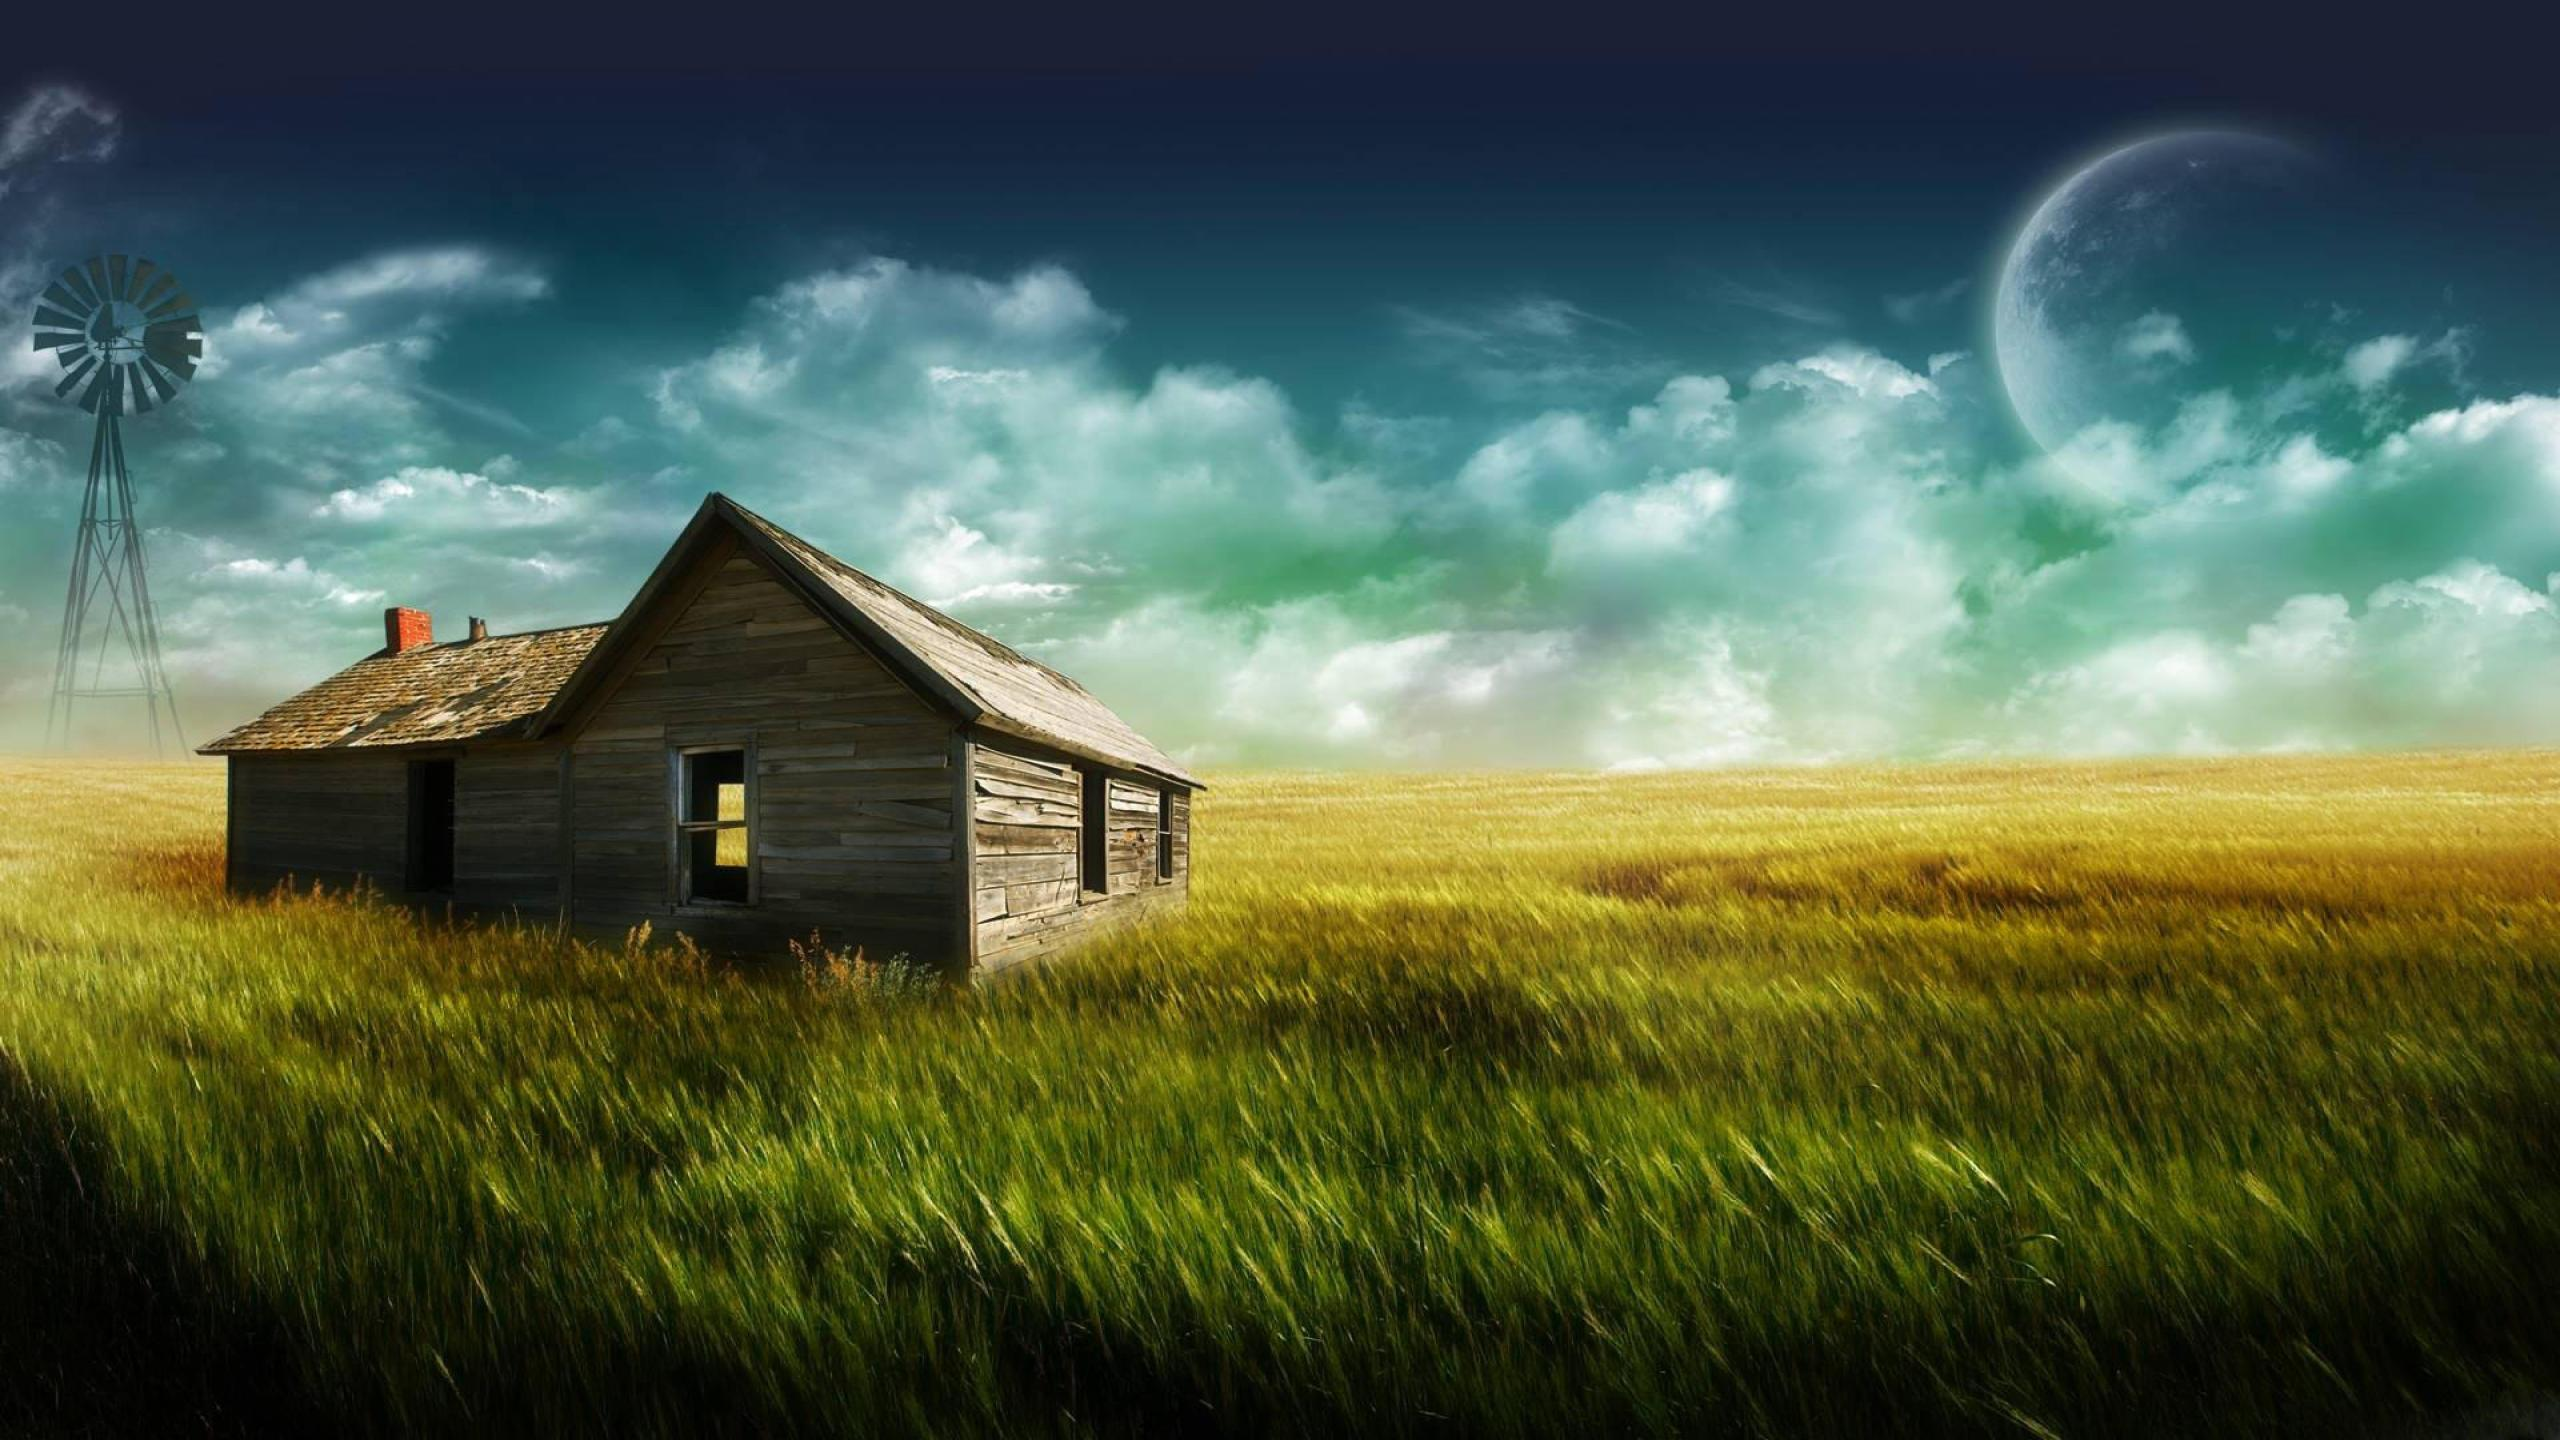 House HD Wallpapers 2560x1440 Photography Wallpapers 2560x1440 2560x1440